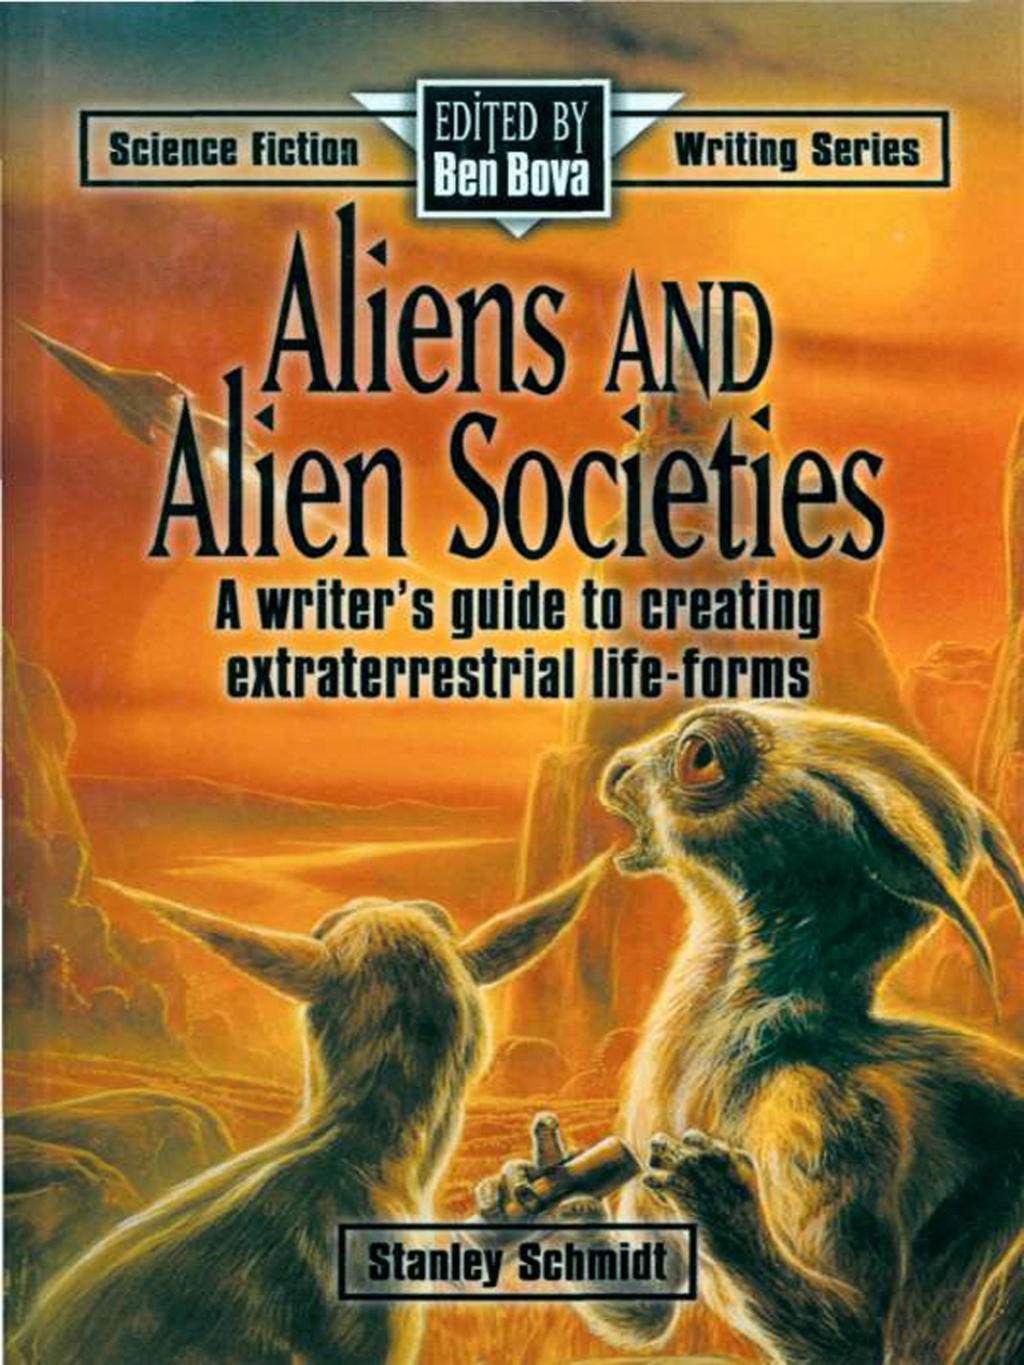 Aliens & Alien Societies A Writer's Guide to Creating Extraterrestrial Life-Forms